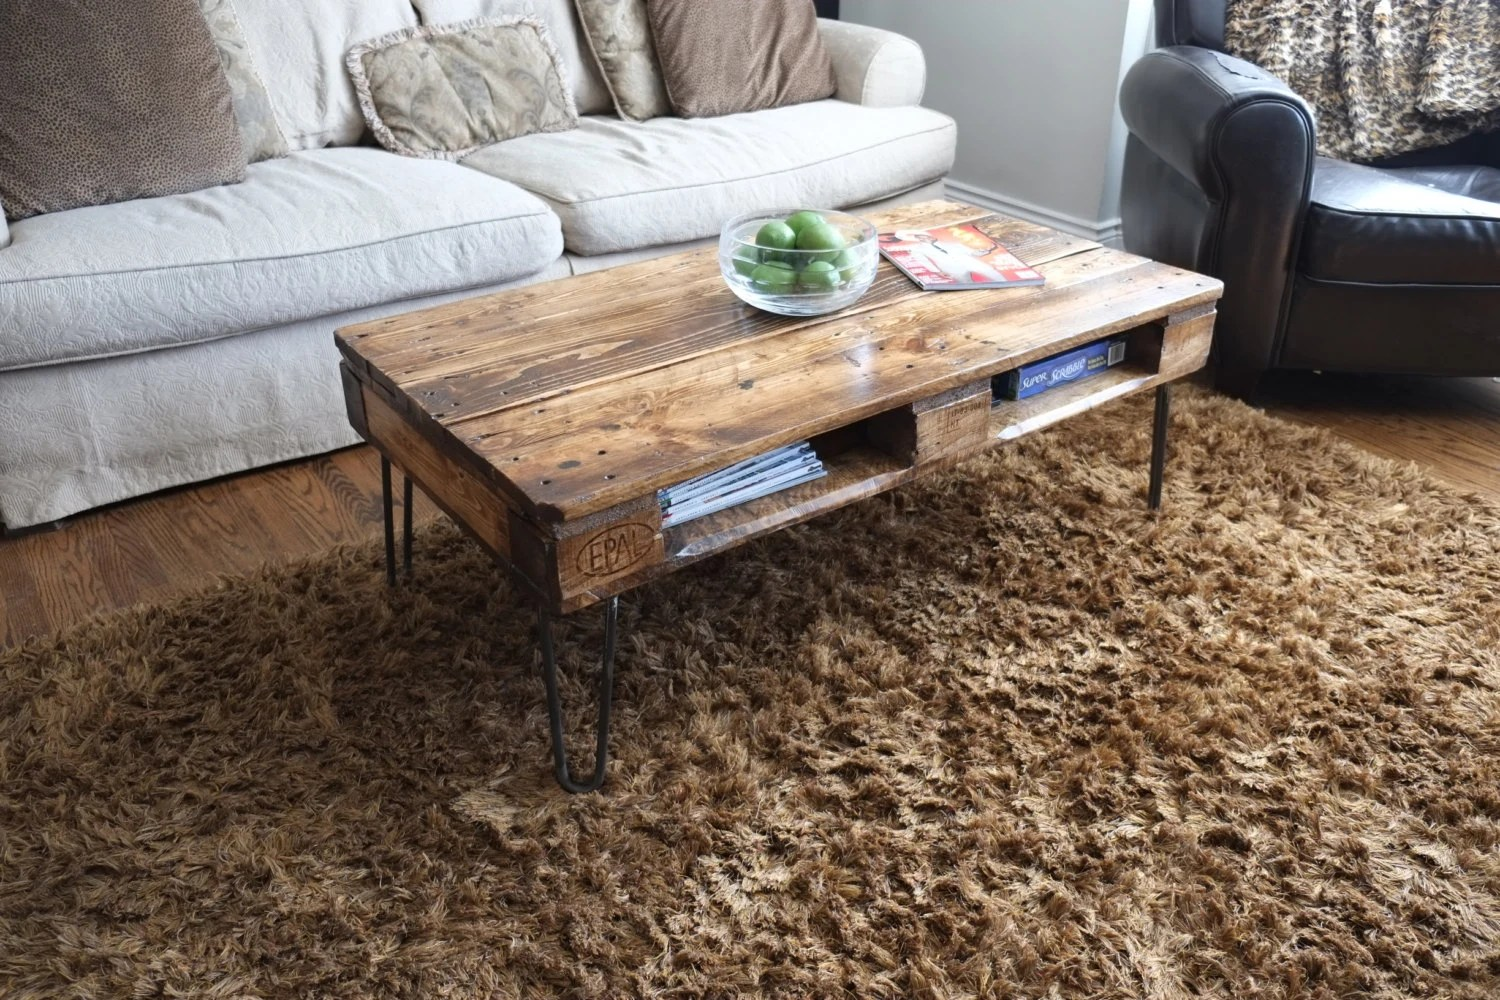 Couchtisch Arabeske Antique Pallet Or Skid Coffee Tables On Hairpin Legs